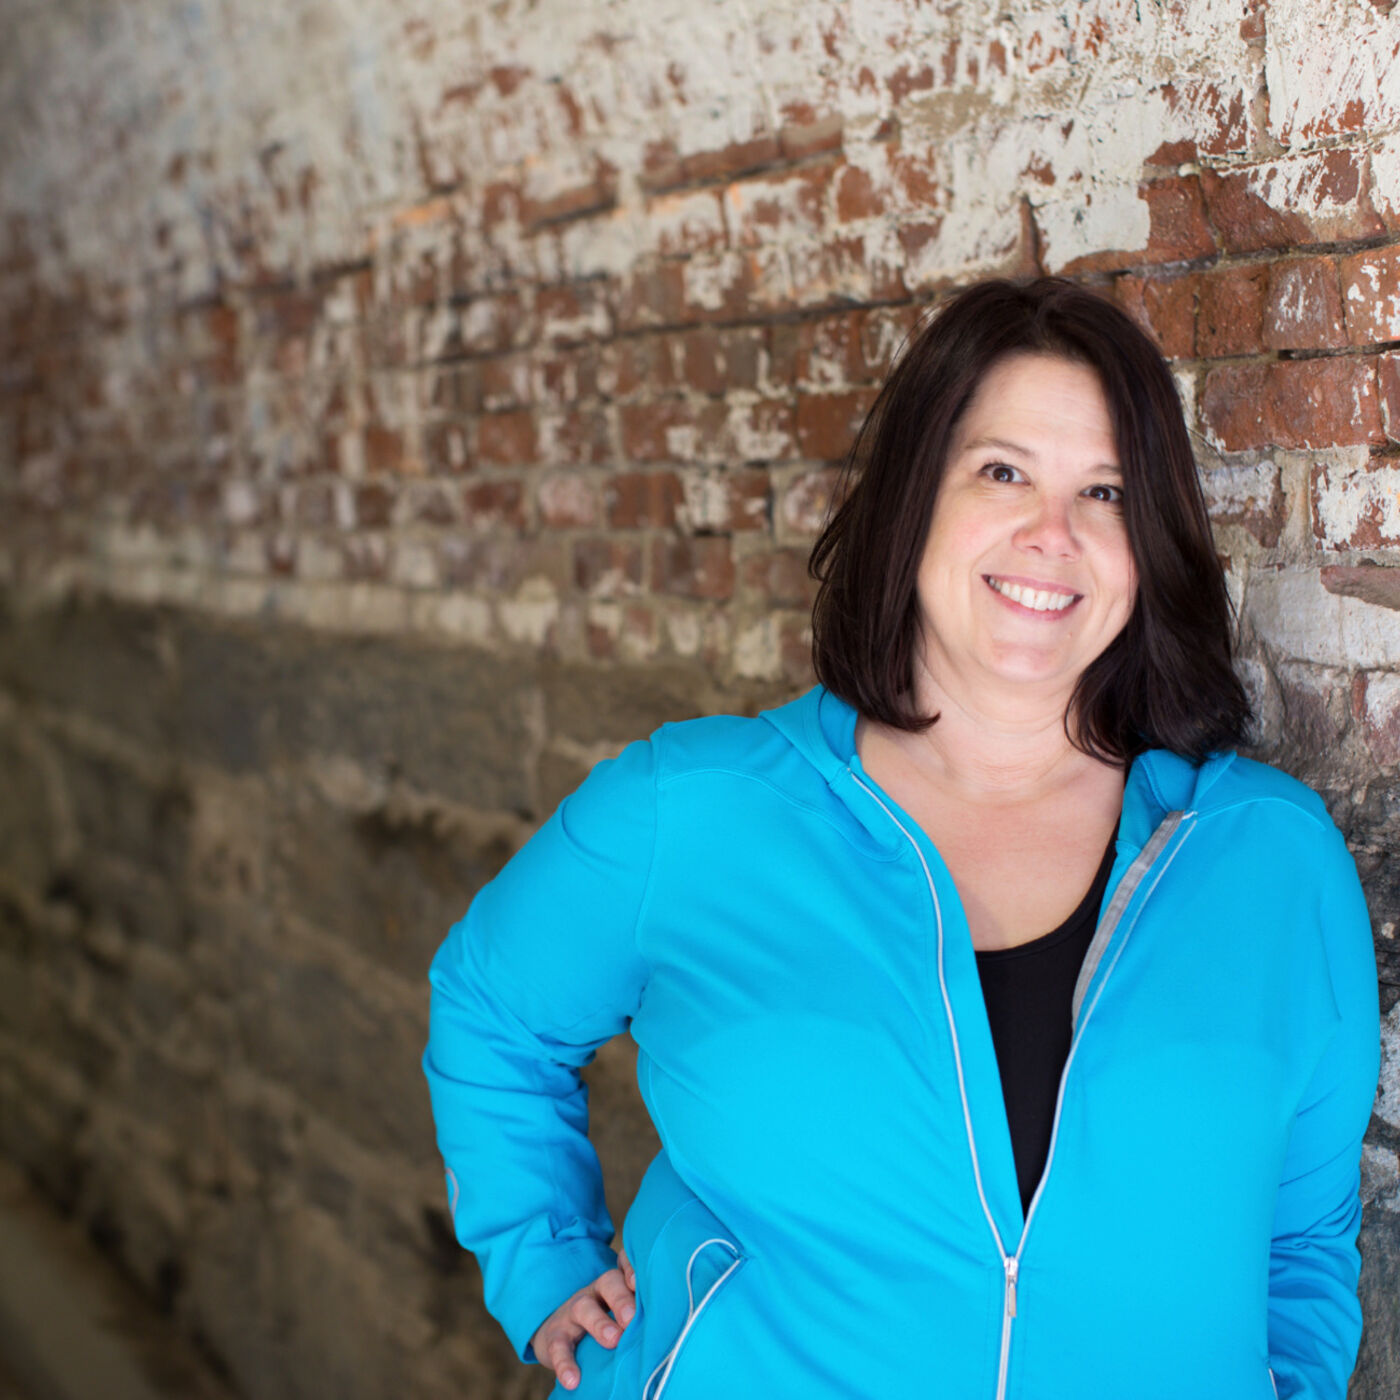 CYC 14 Running Towards Confidence and Away From Negativity with Mindset Coach Jill Angie